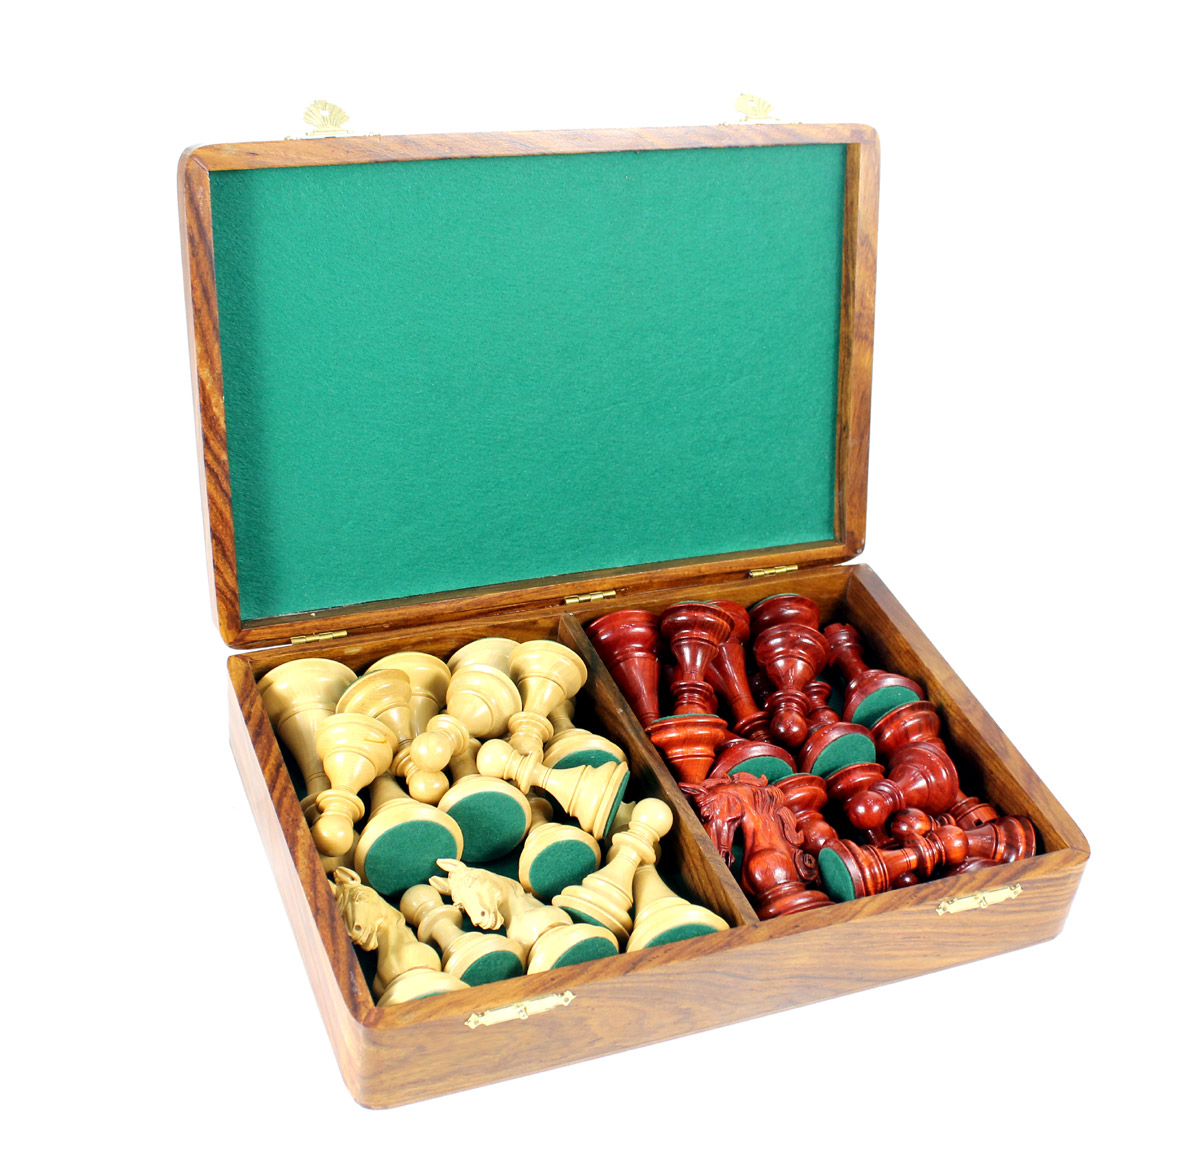 Free wooden storage box with these chess pieces.